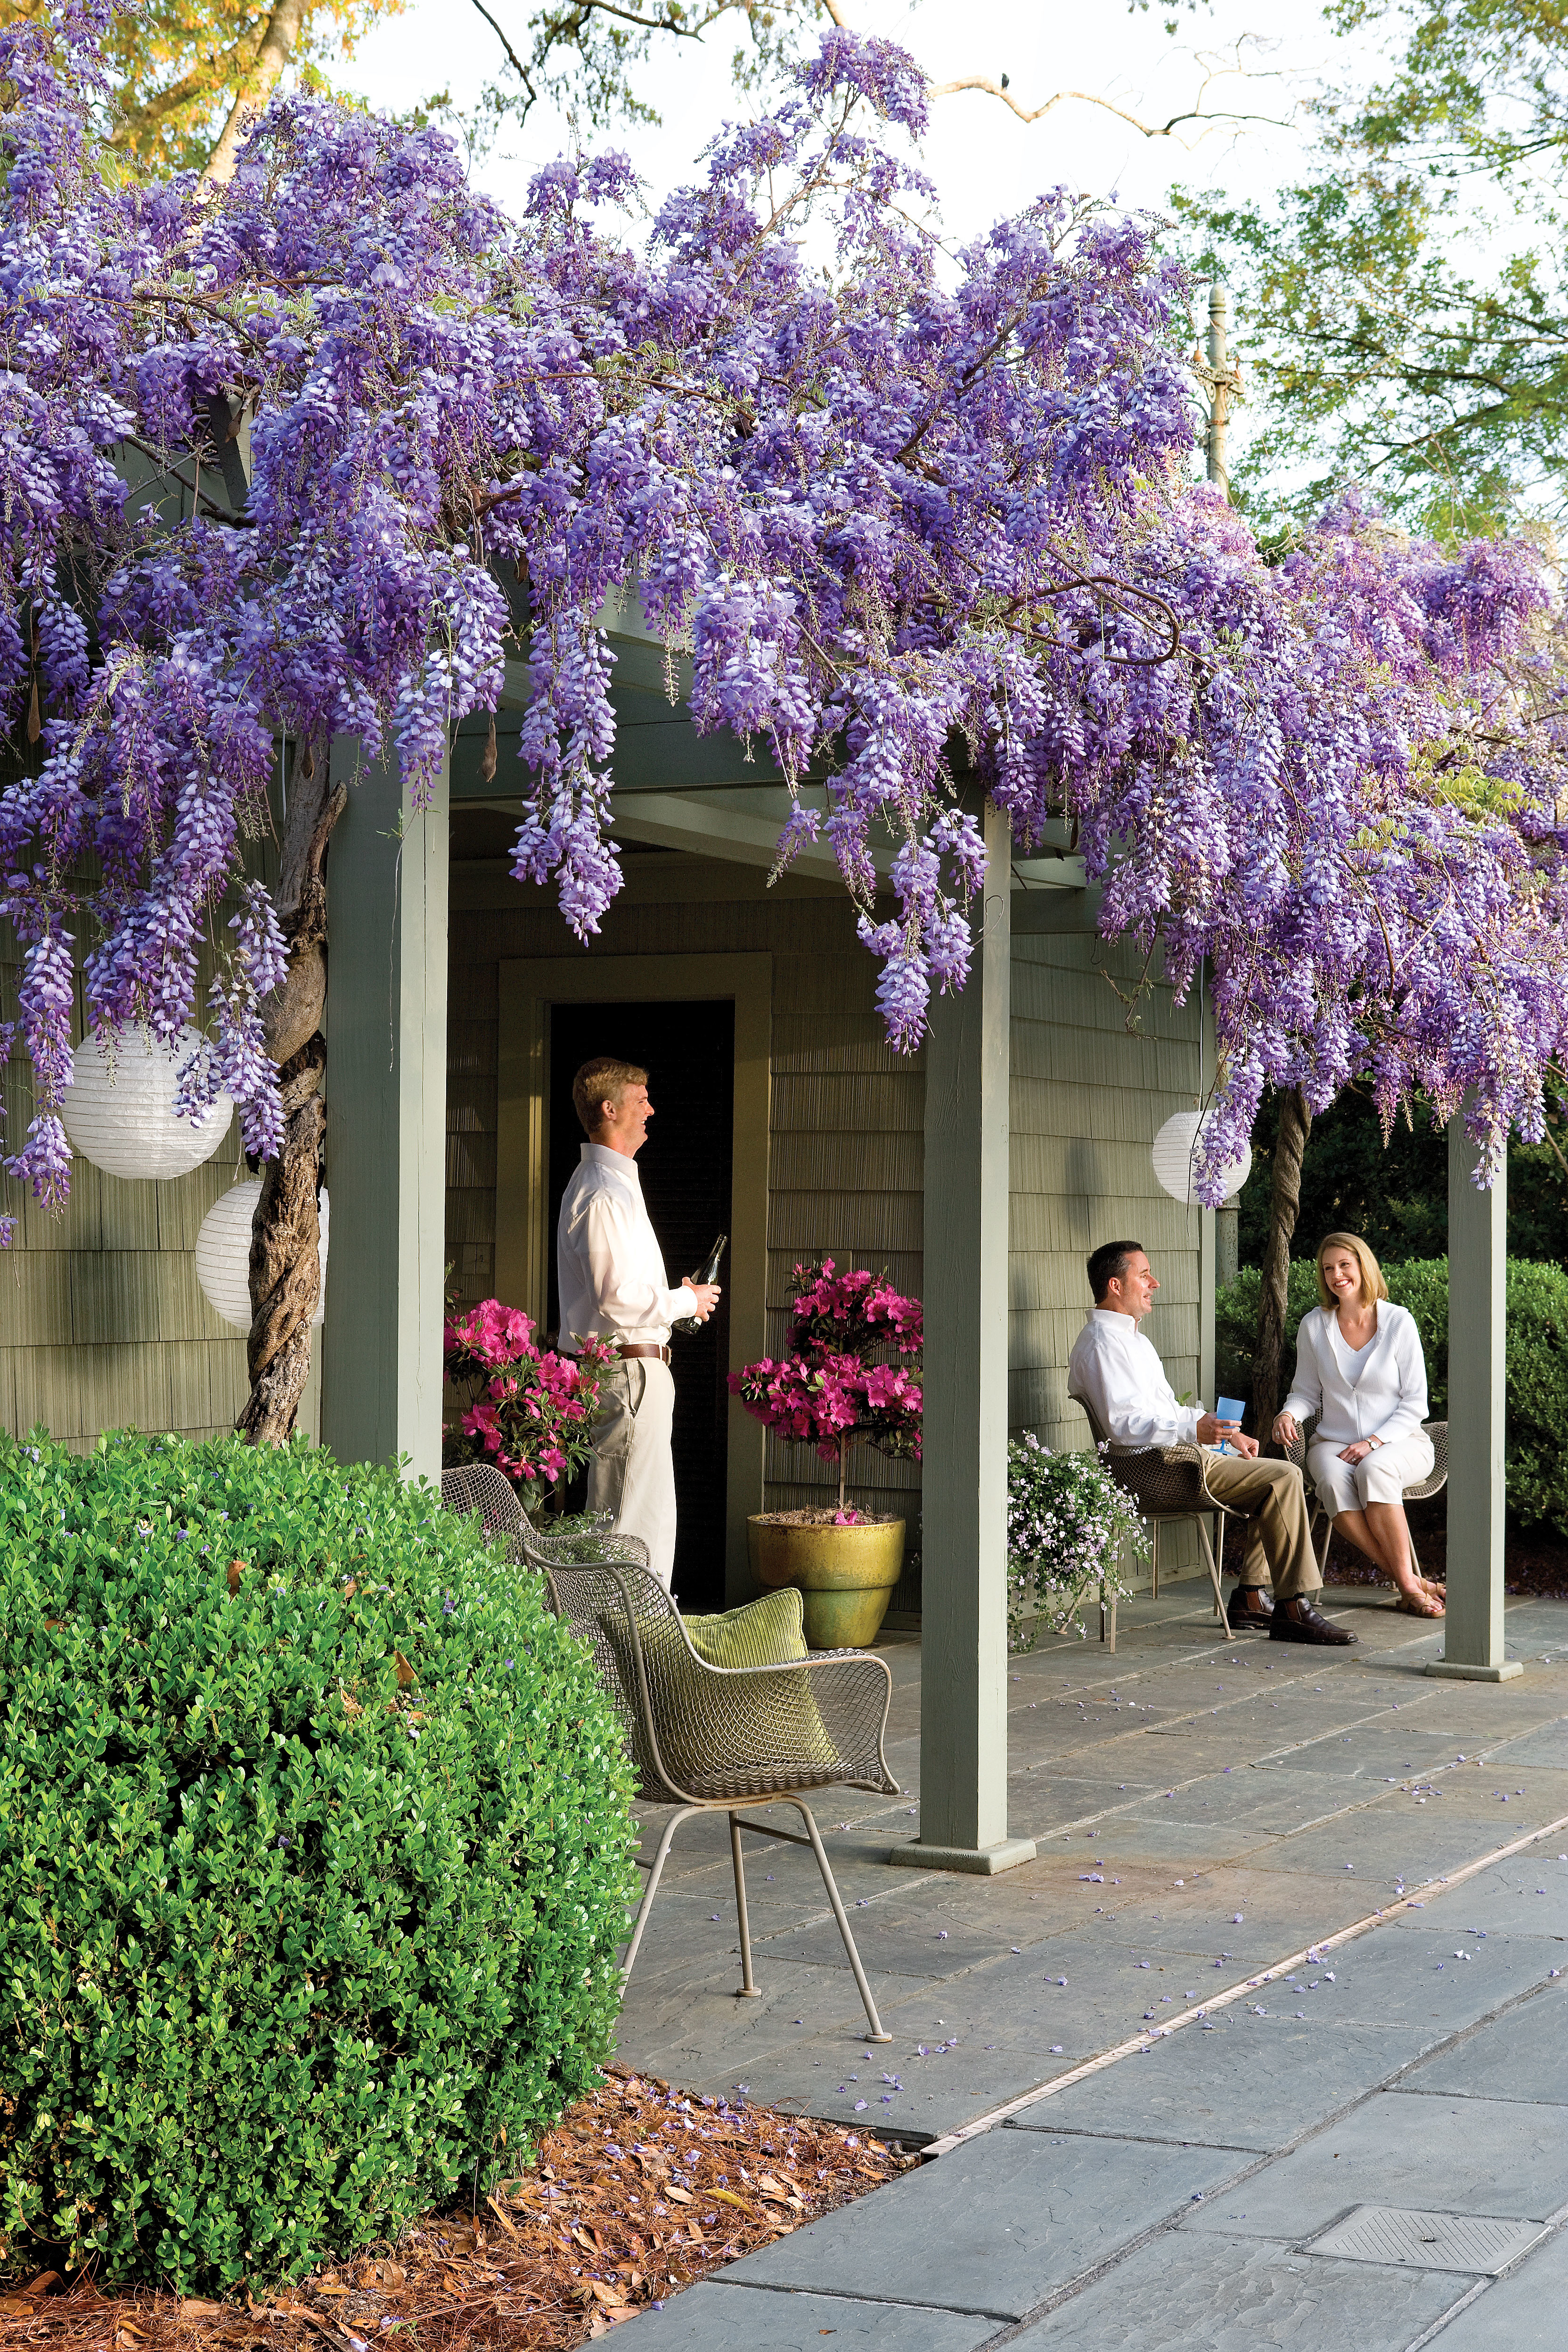 Wisteria Vines with Purple Flowers - Also Grow as Trees